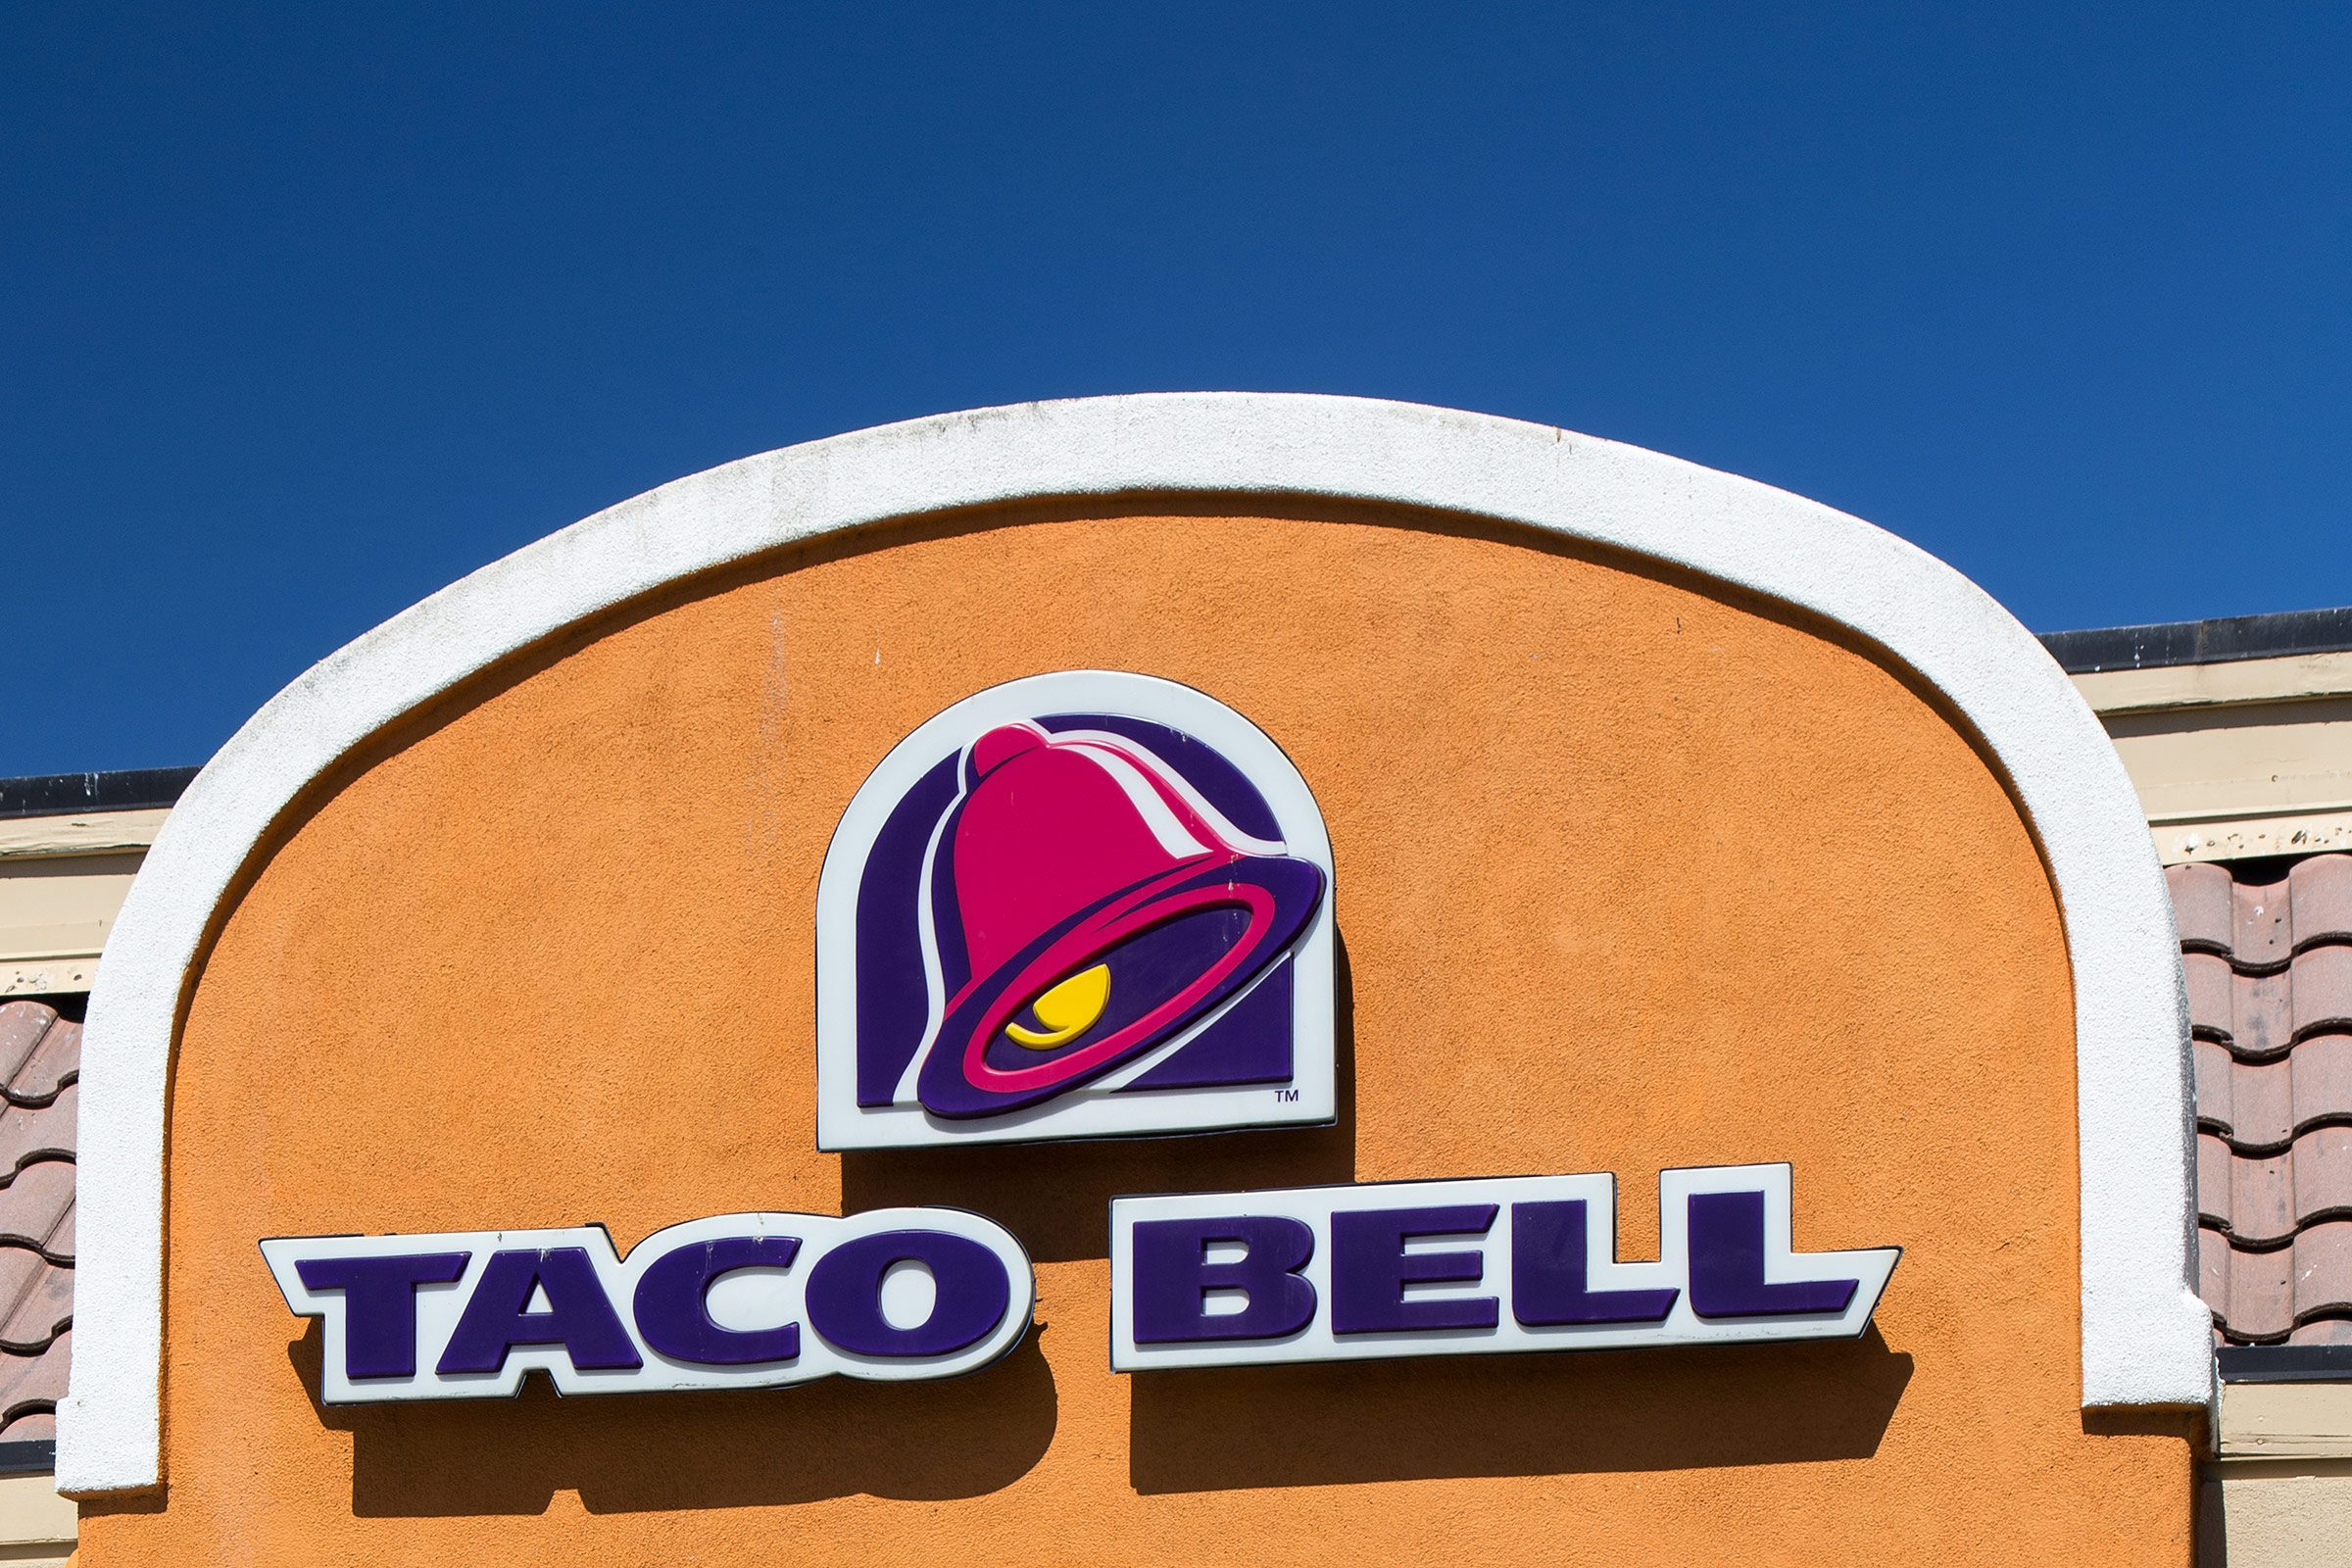 At Taco Bell, most of our food does carry over, so we reheat it and serve it the next day.